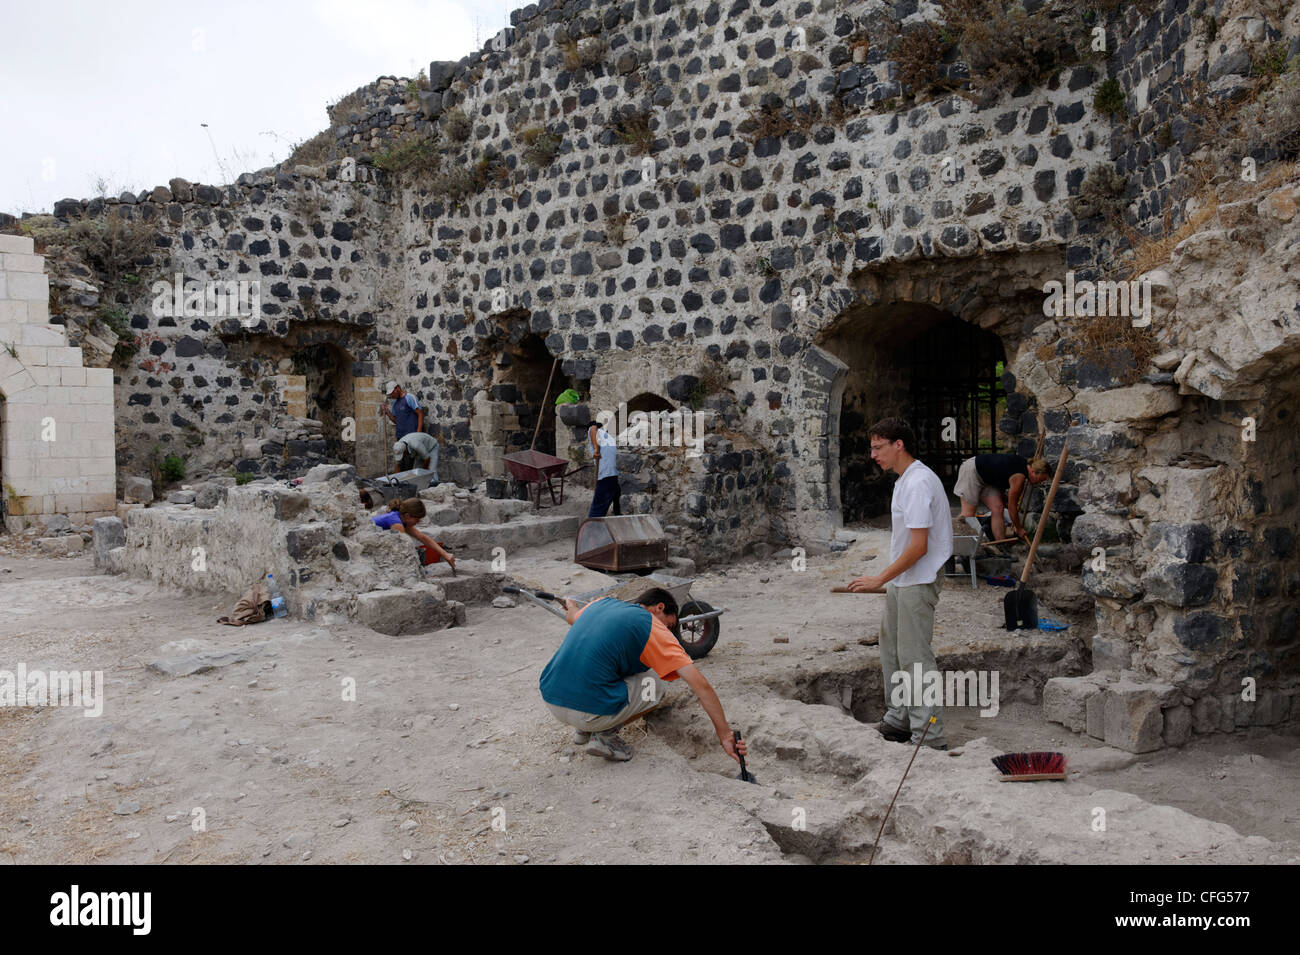 Qalaat Marqab. Syria. View of archaeologists excavating and restoring and section of the crusader castle. Qalaat - Stock Image